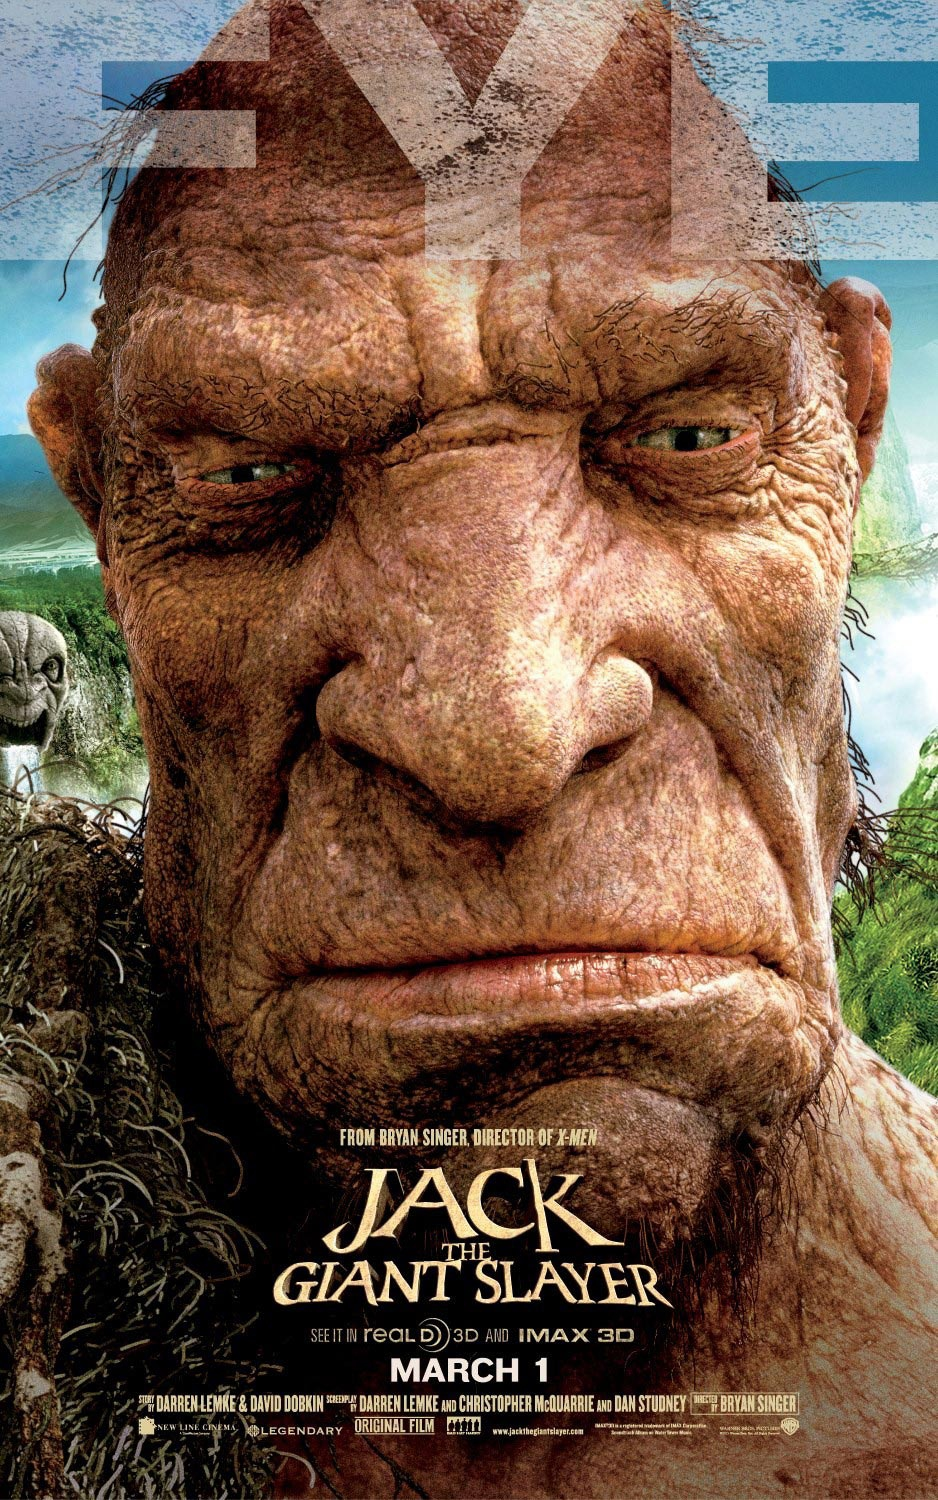 Jack the Giant Slayer - Movie Poster #4 (Original)